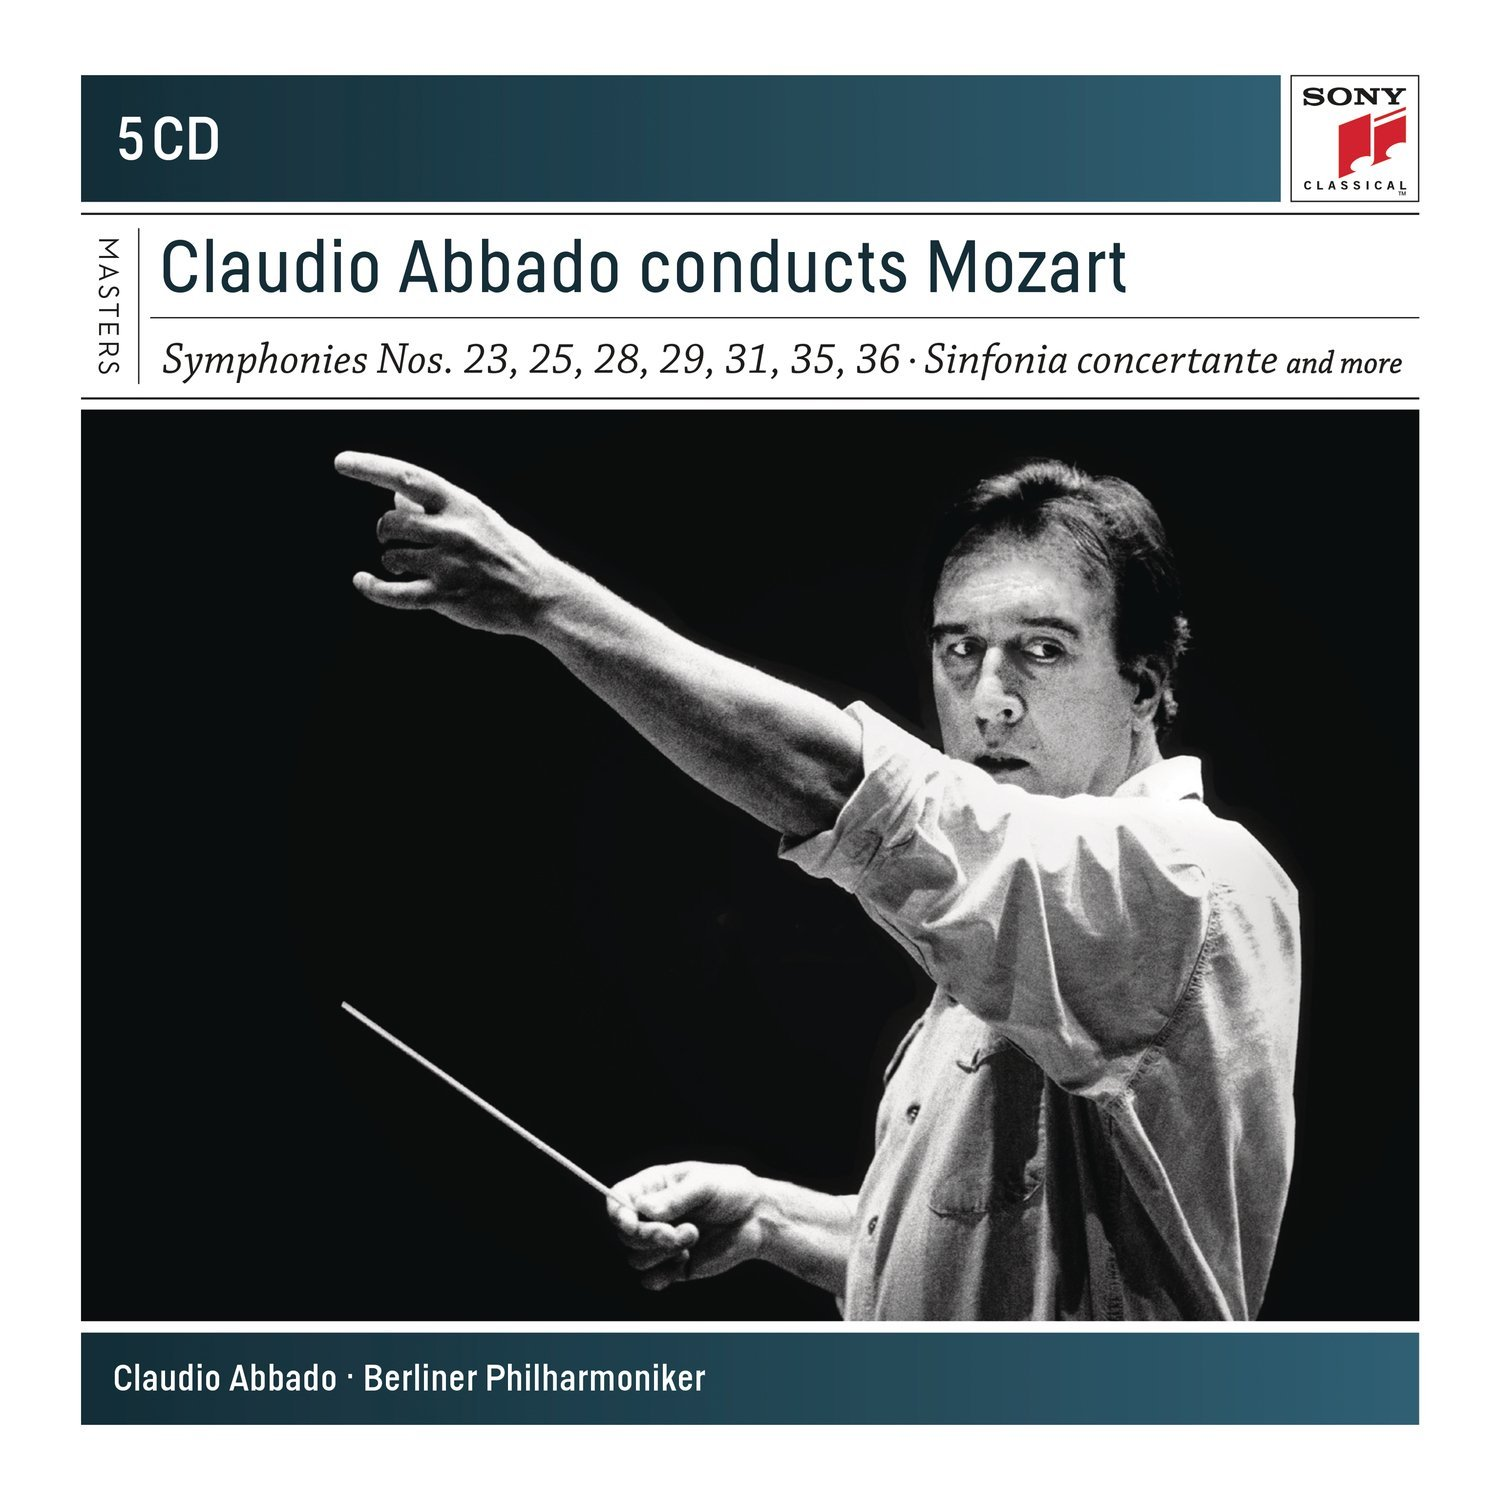 Claudio Abbado Conducts Mozart - CD